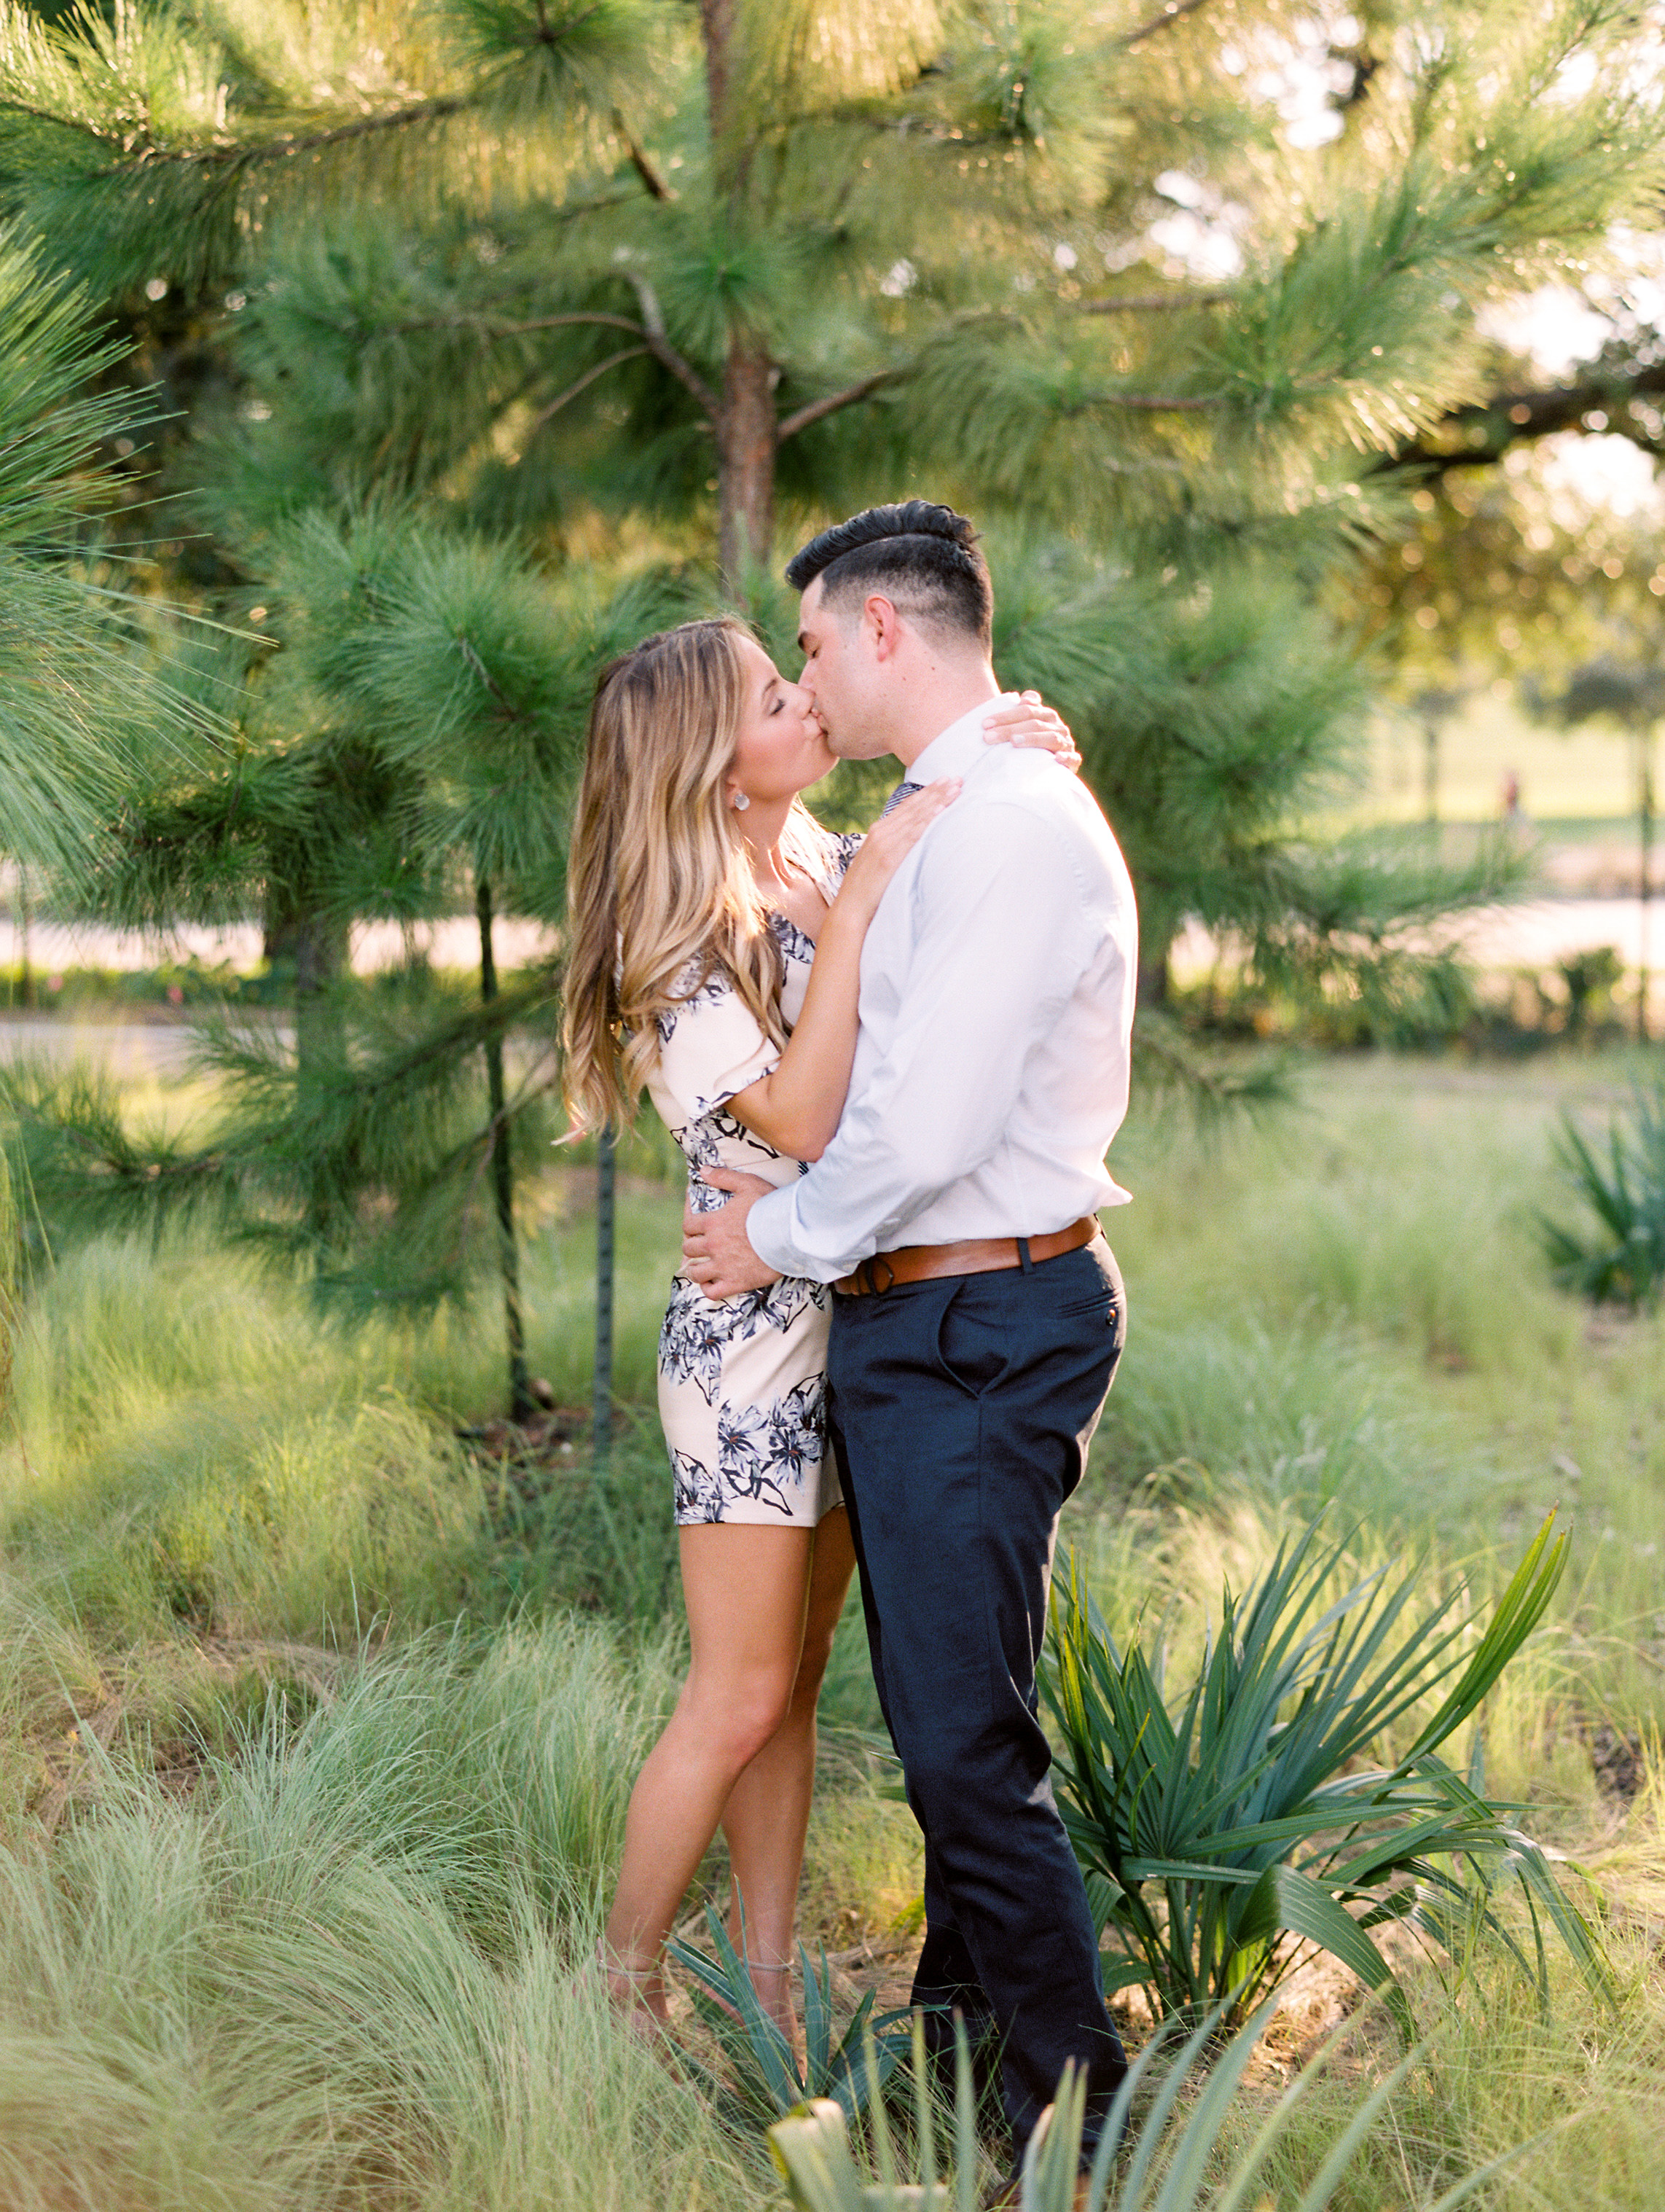 Dana-Fernandez-Photography-Houston-Engagement-Wedding-Film-Photographer-14.jpg